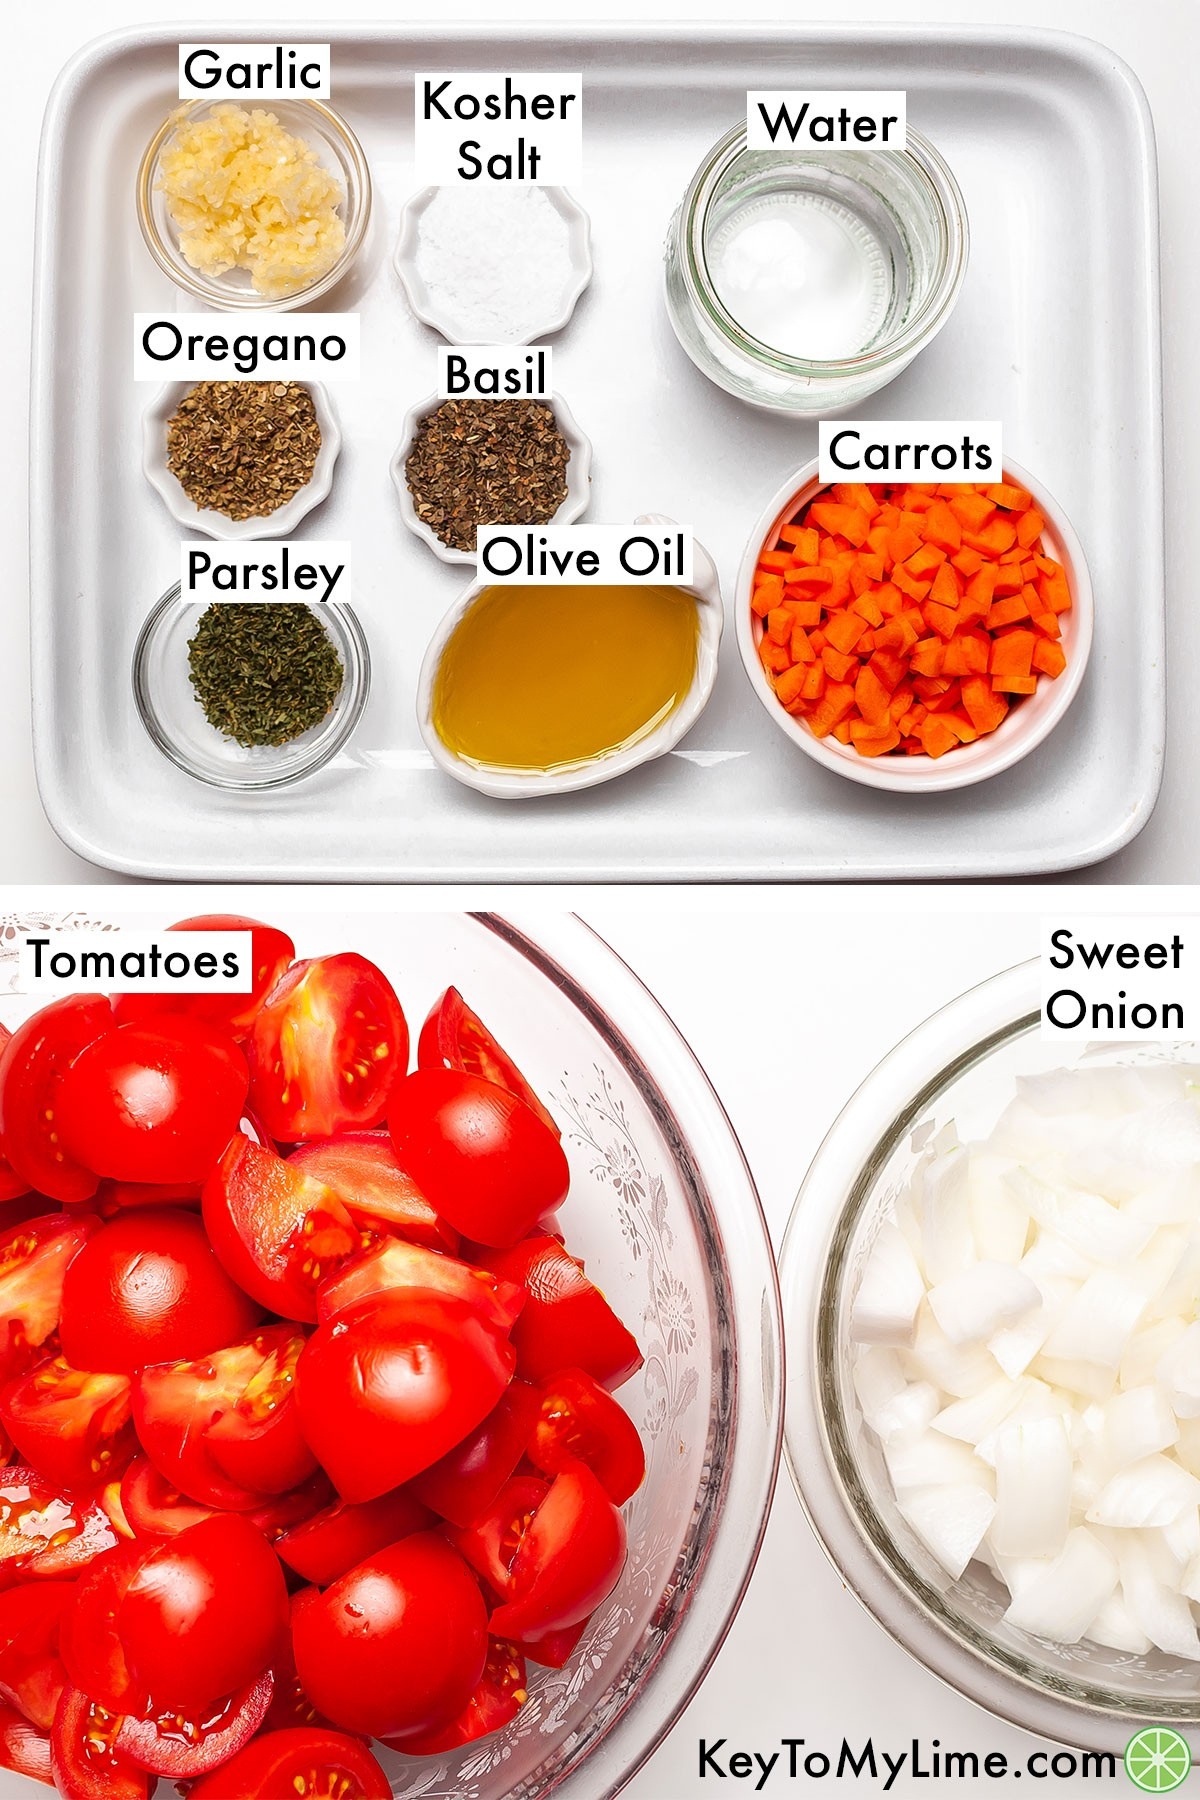 The ingredients for tomato soup from scratch individually labeled.